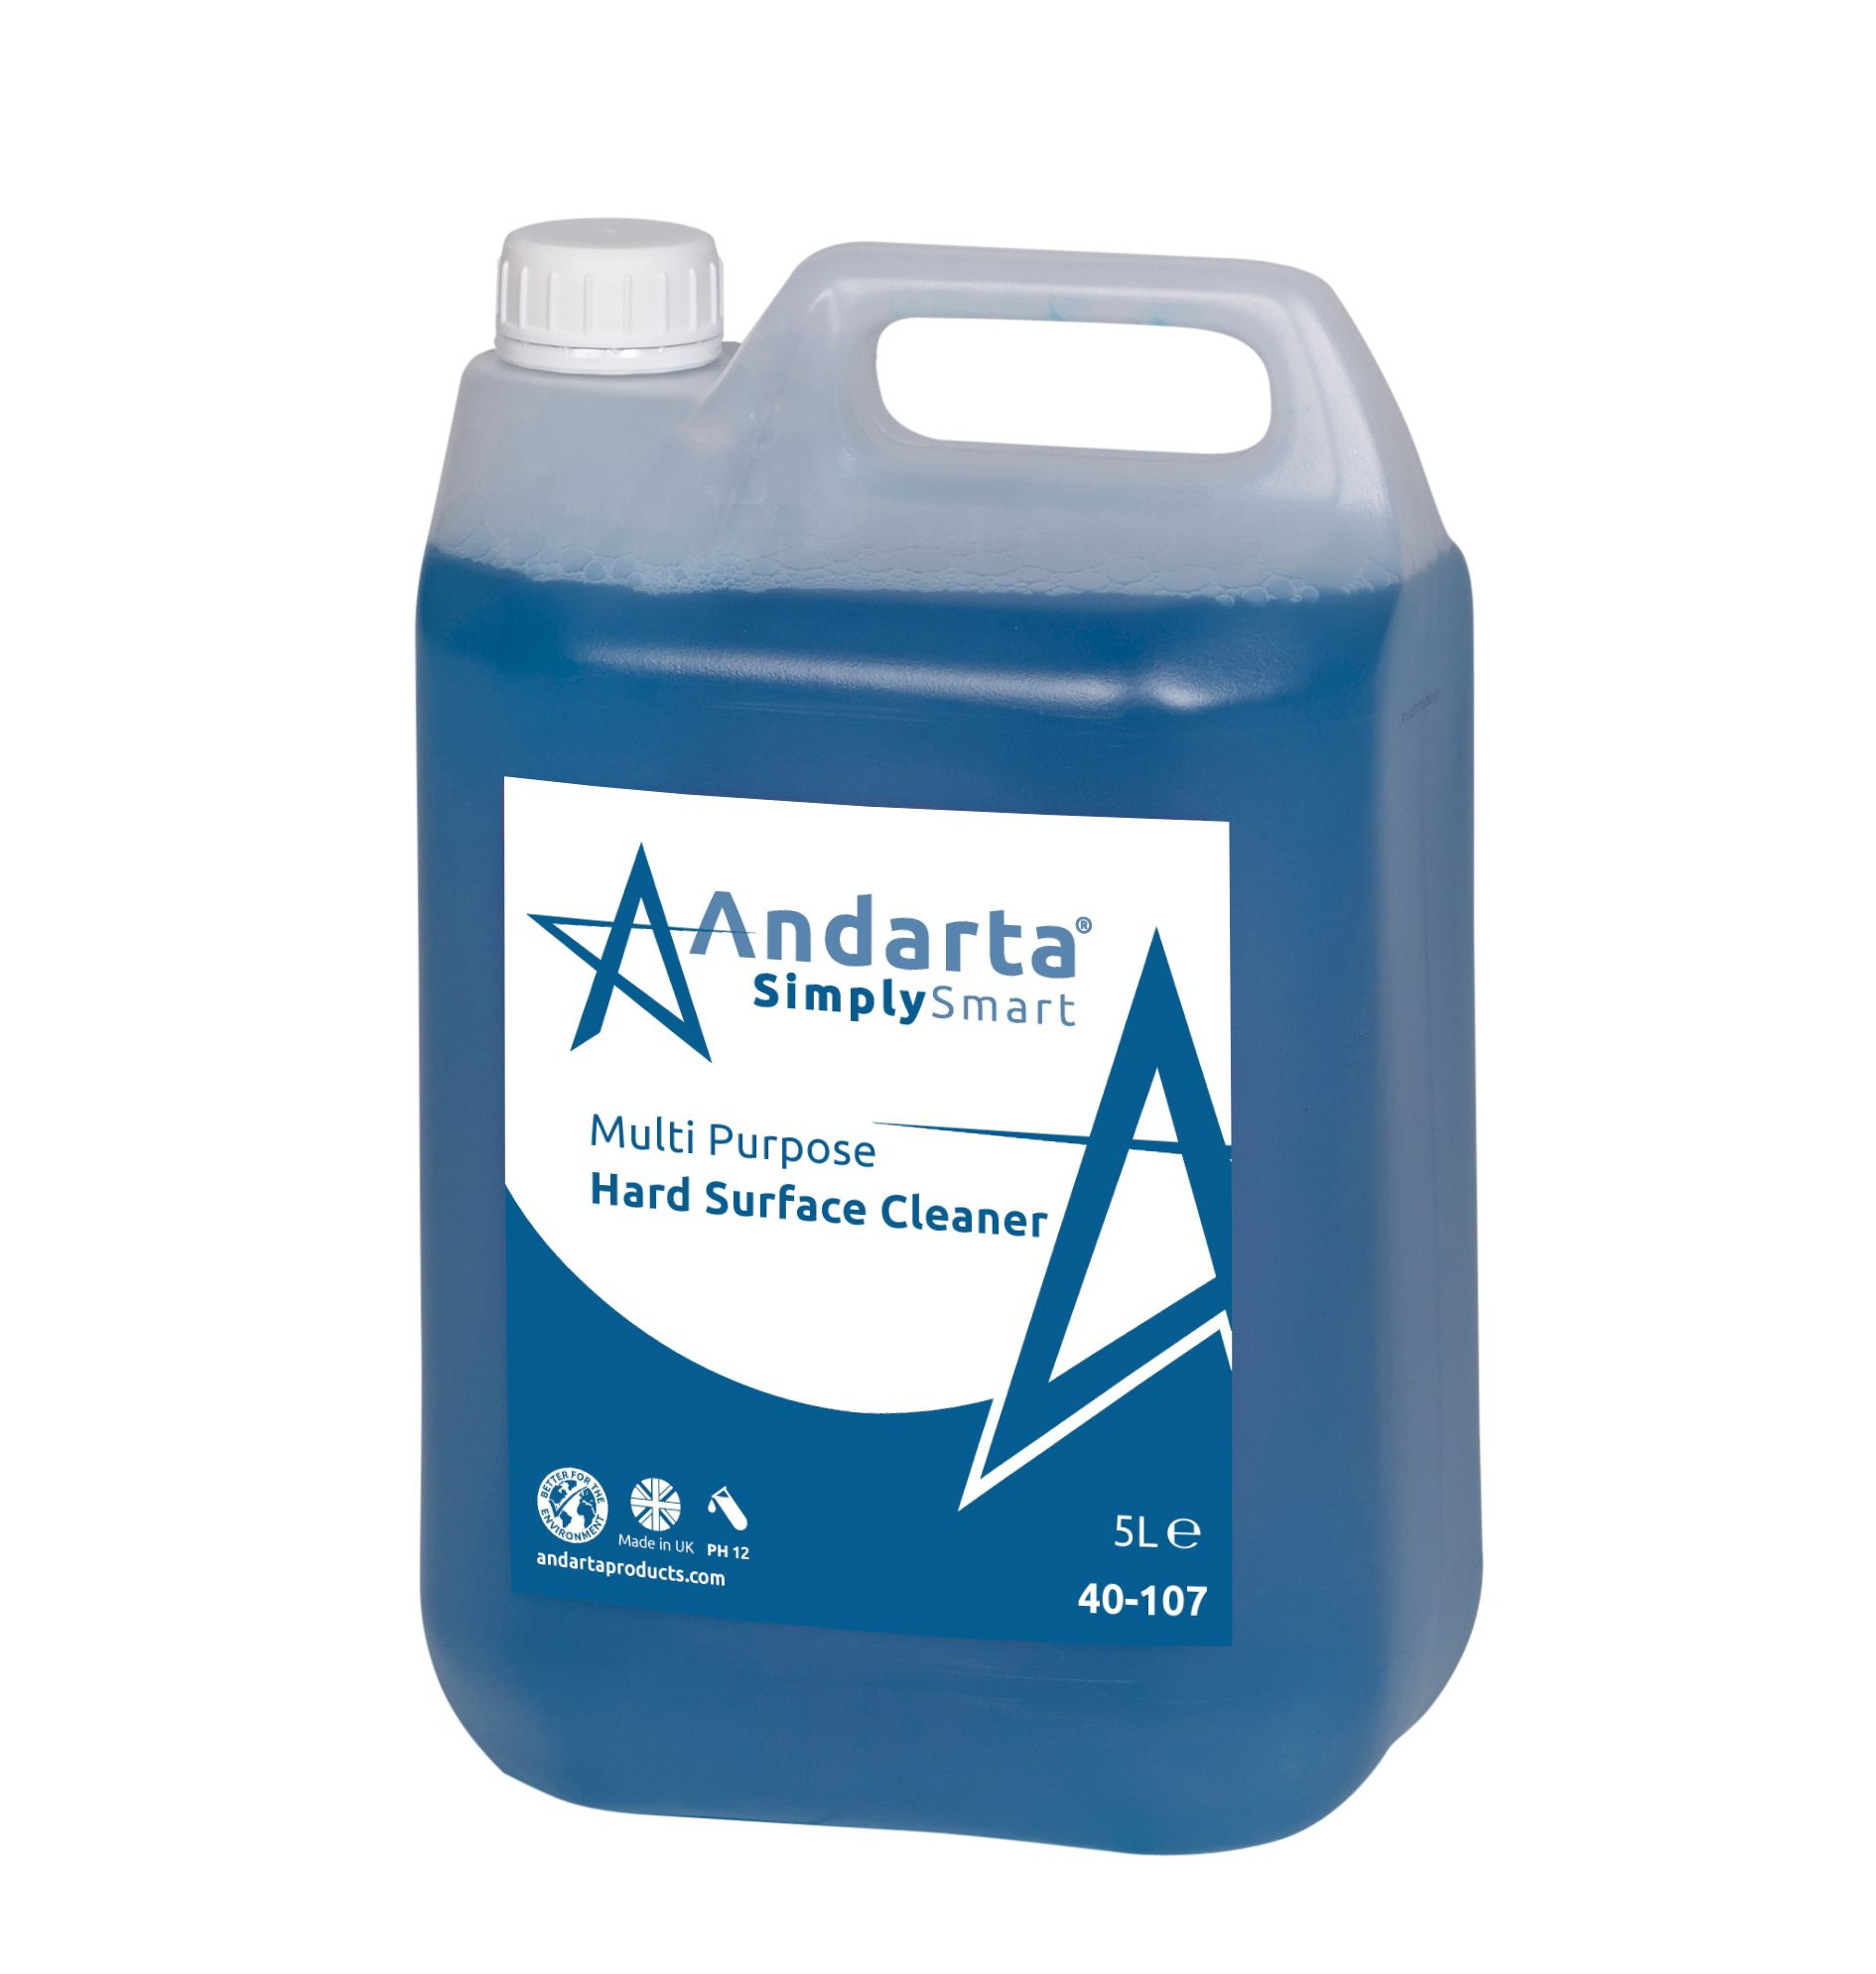 Andarta Multi Purpose Hard Surface Cleaner